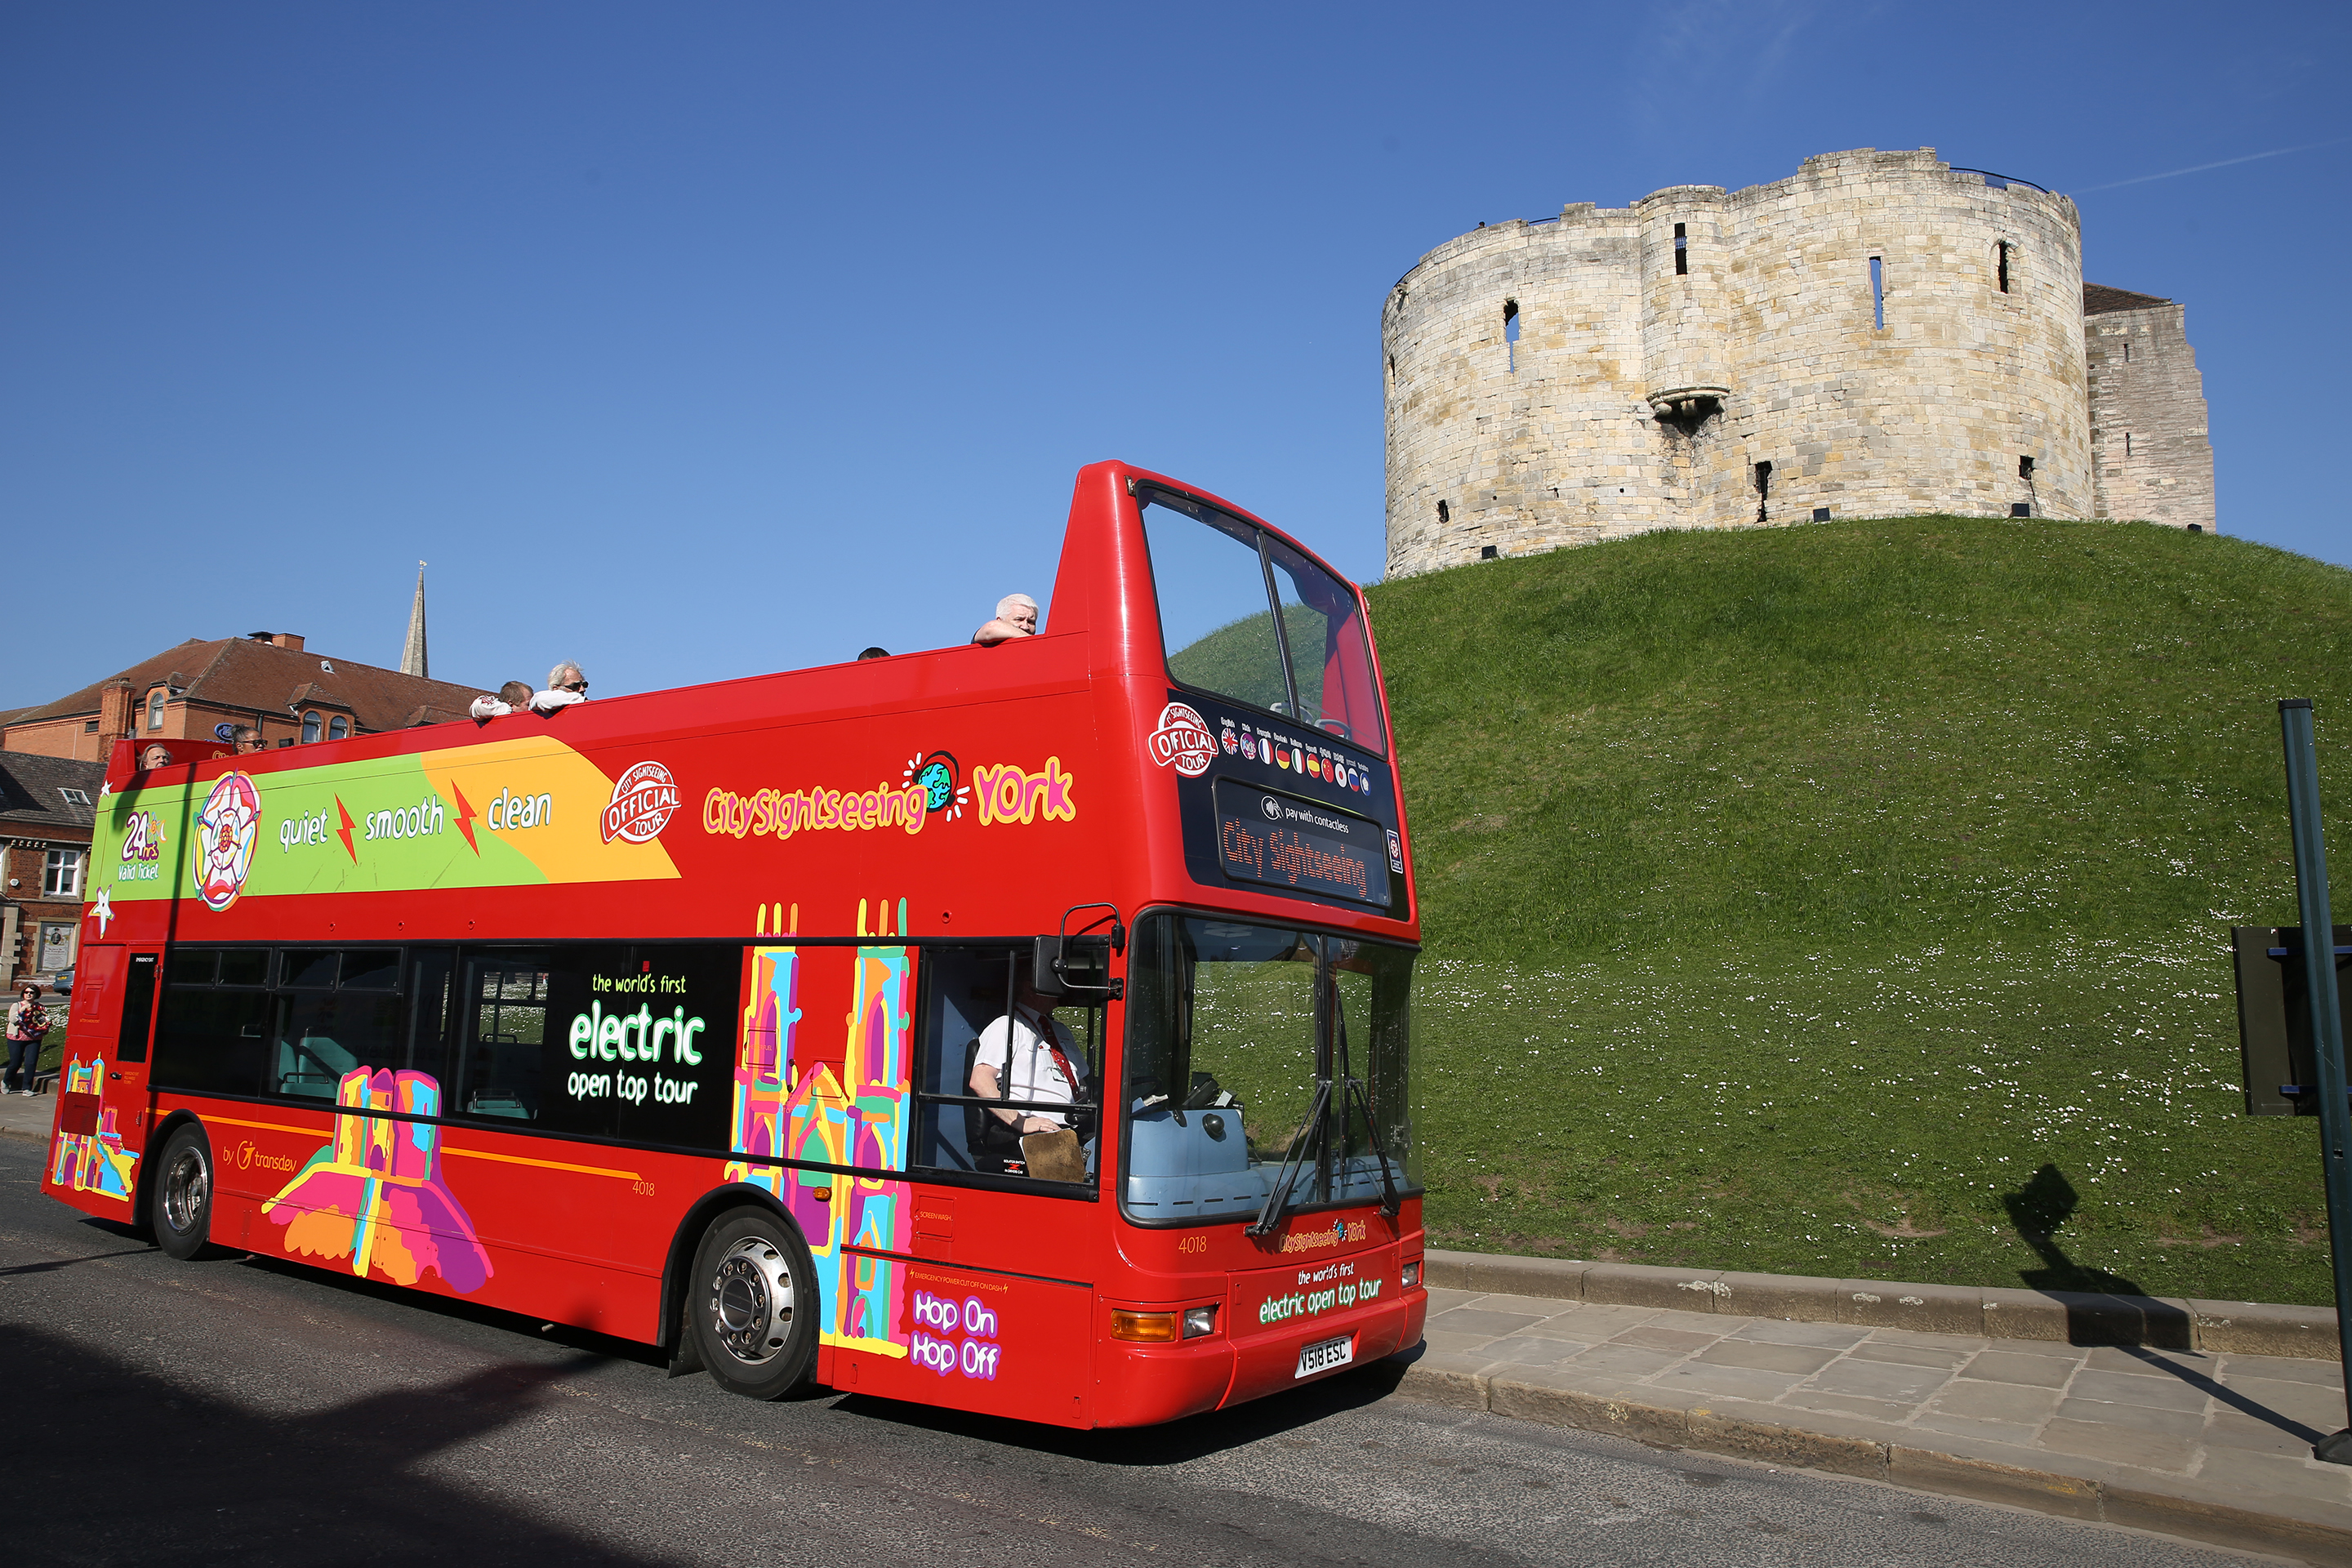 City Sightseeing open topper